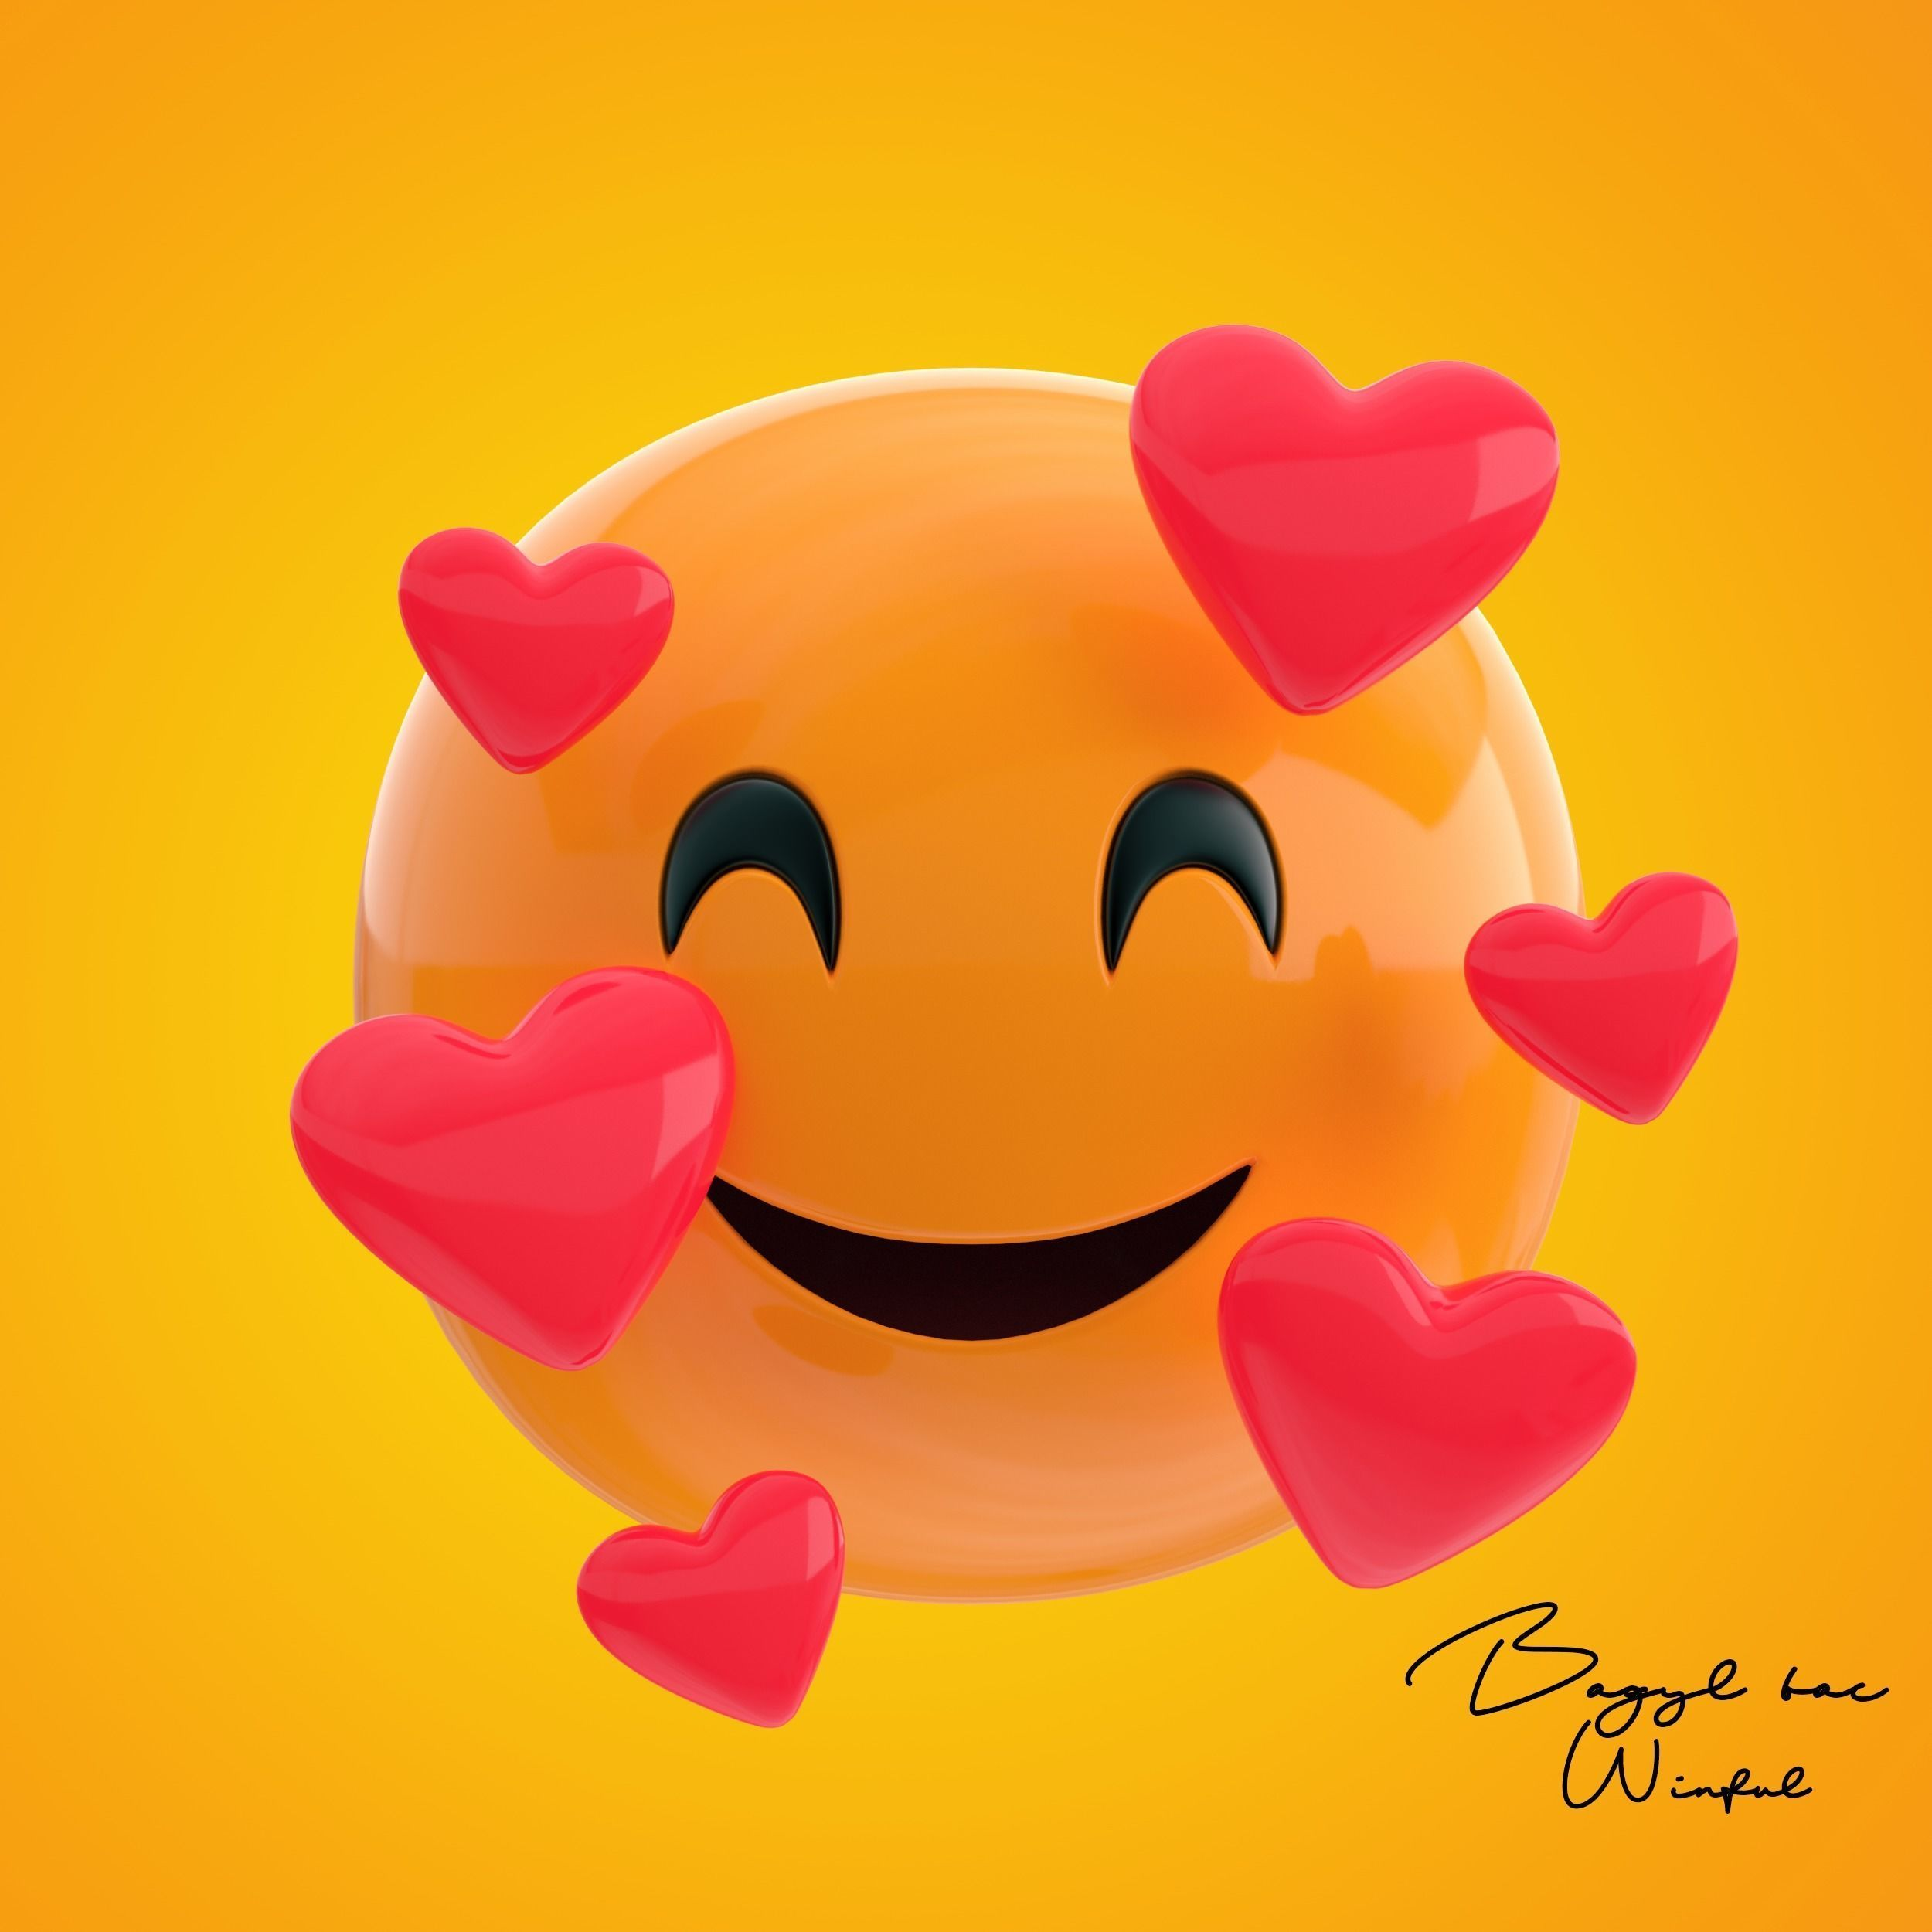 Emoji Smiling Face with hearts